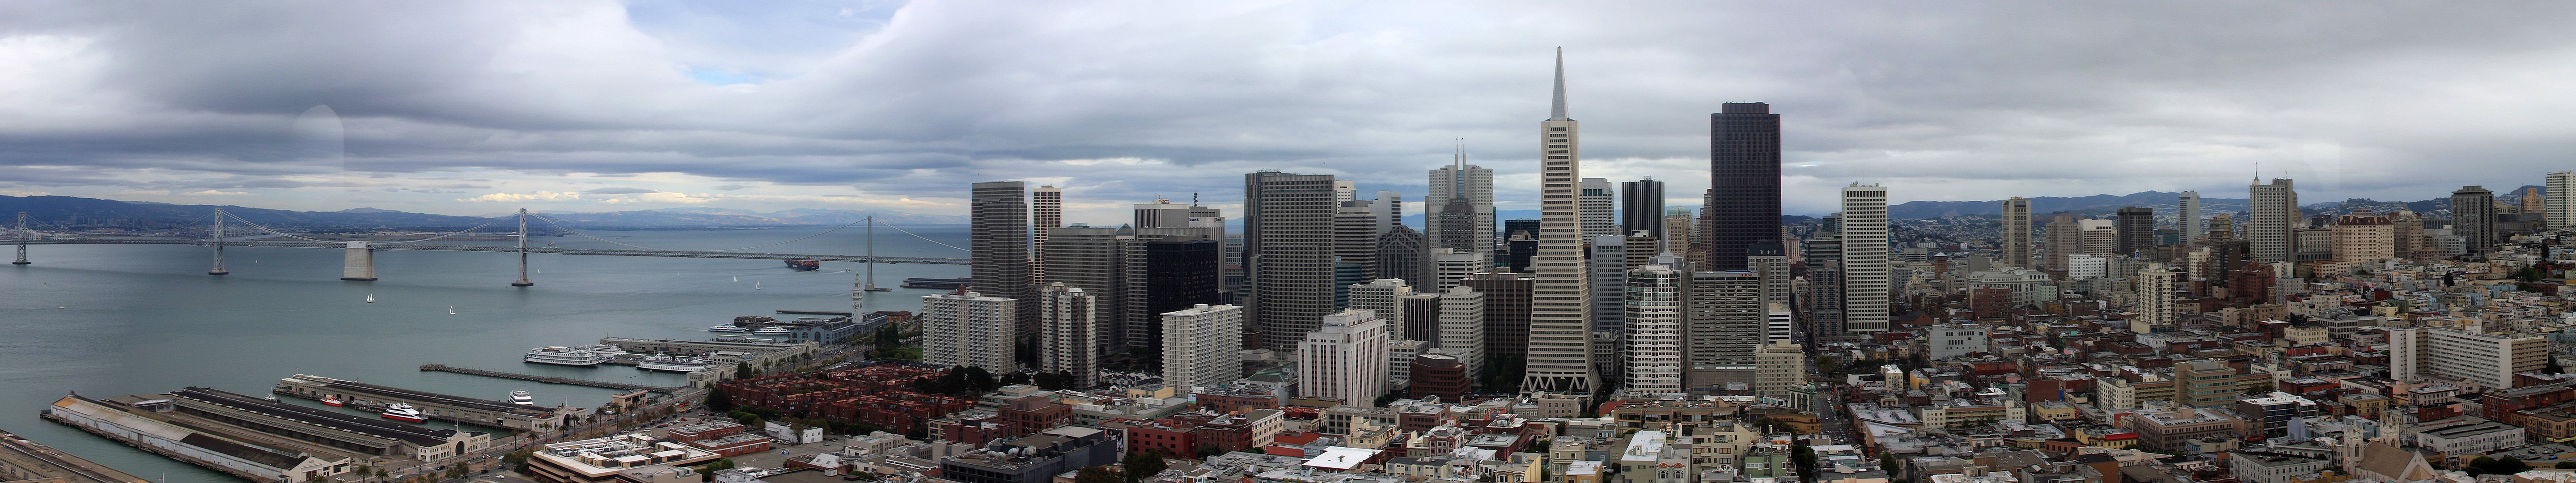 5760x1080 Building, City, Town, Urban, Downtown resized by Ze Robot